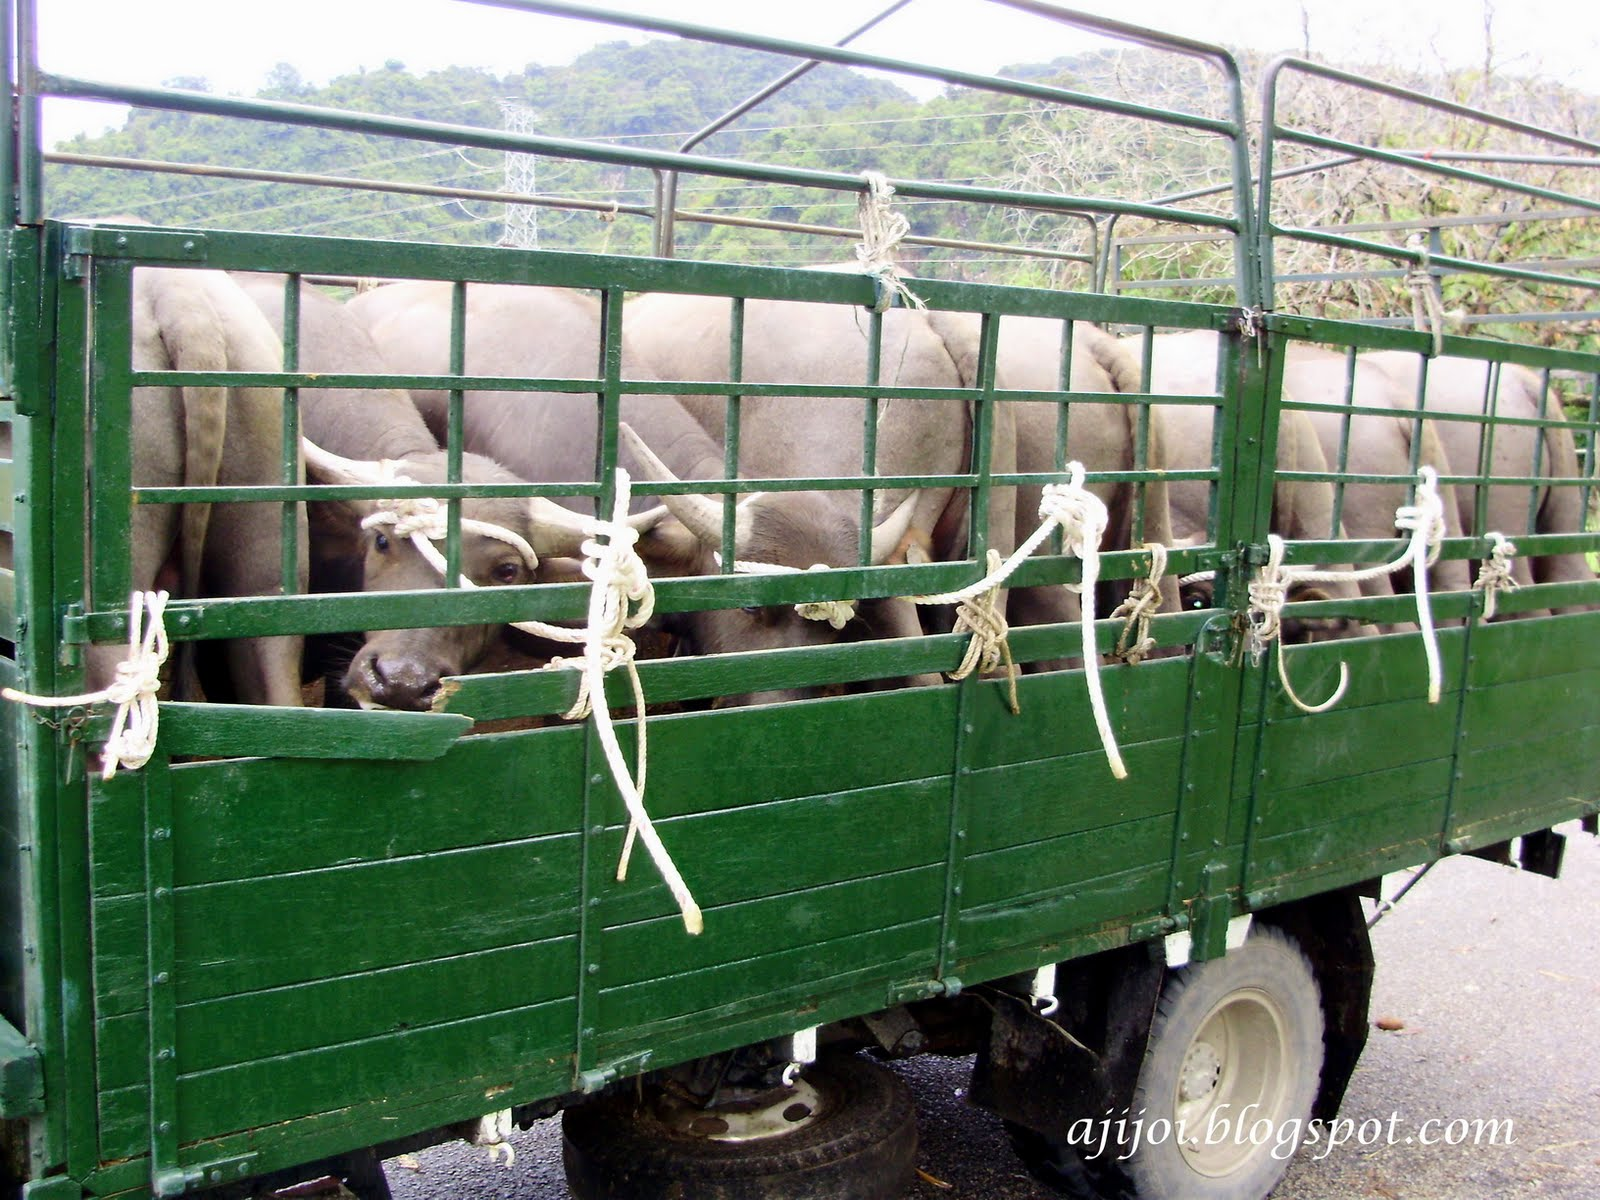 bulls tied on lorry